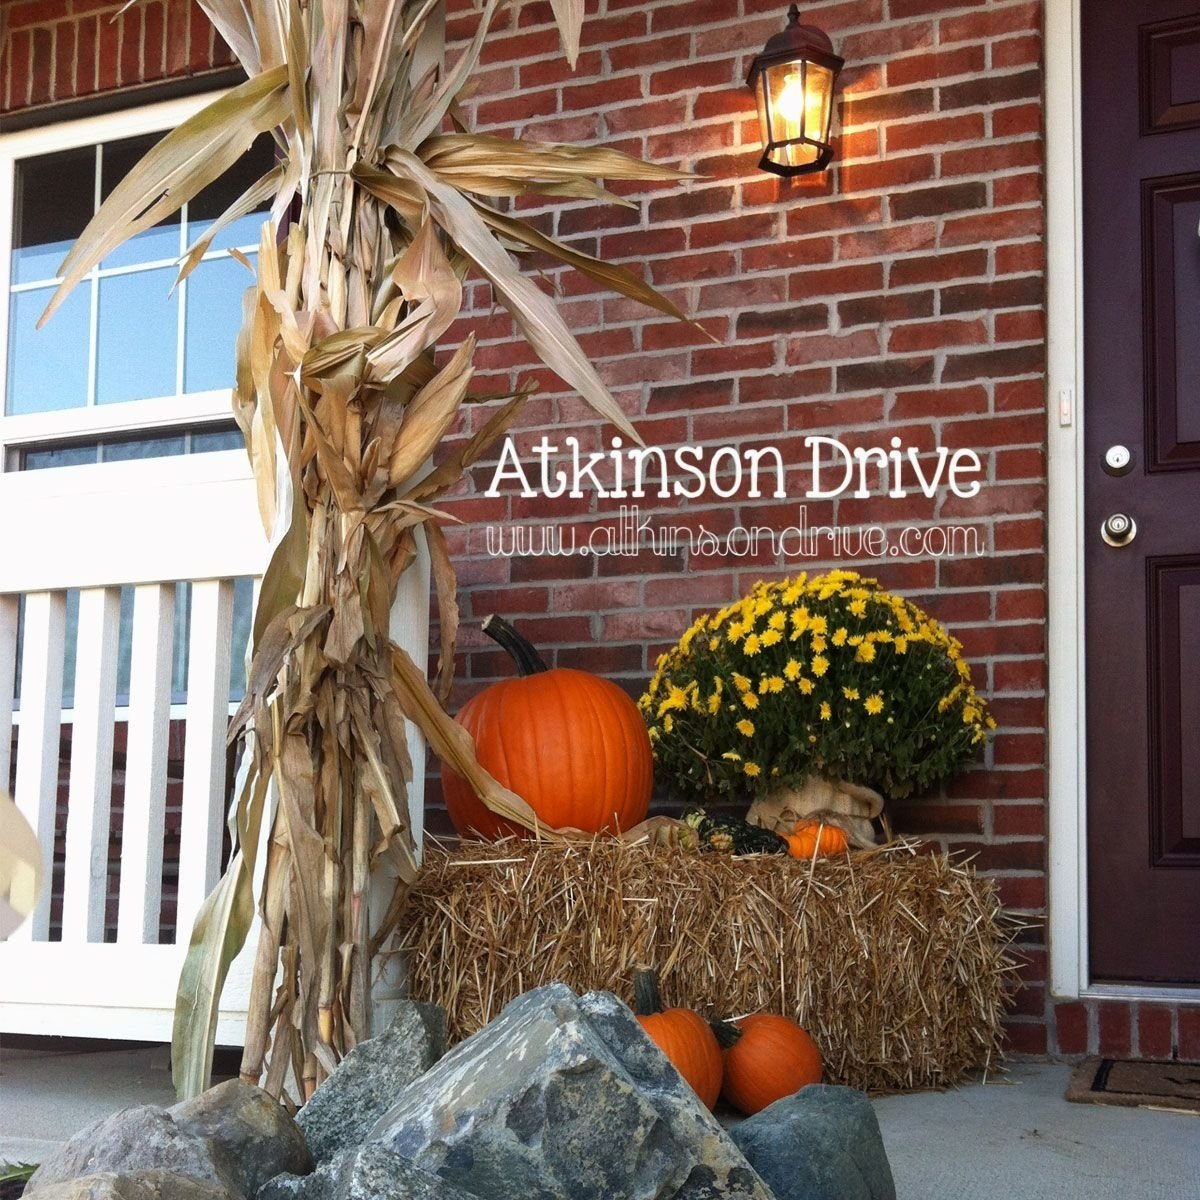 10 Awesome Fall Decorating Ideas For Outside fall decorating ideas for outside fall decorating ideas 2015 for 2020